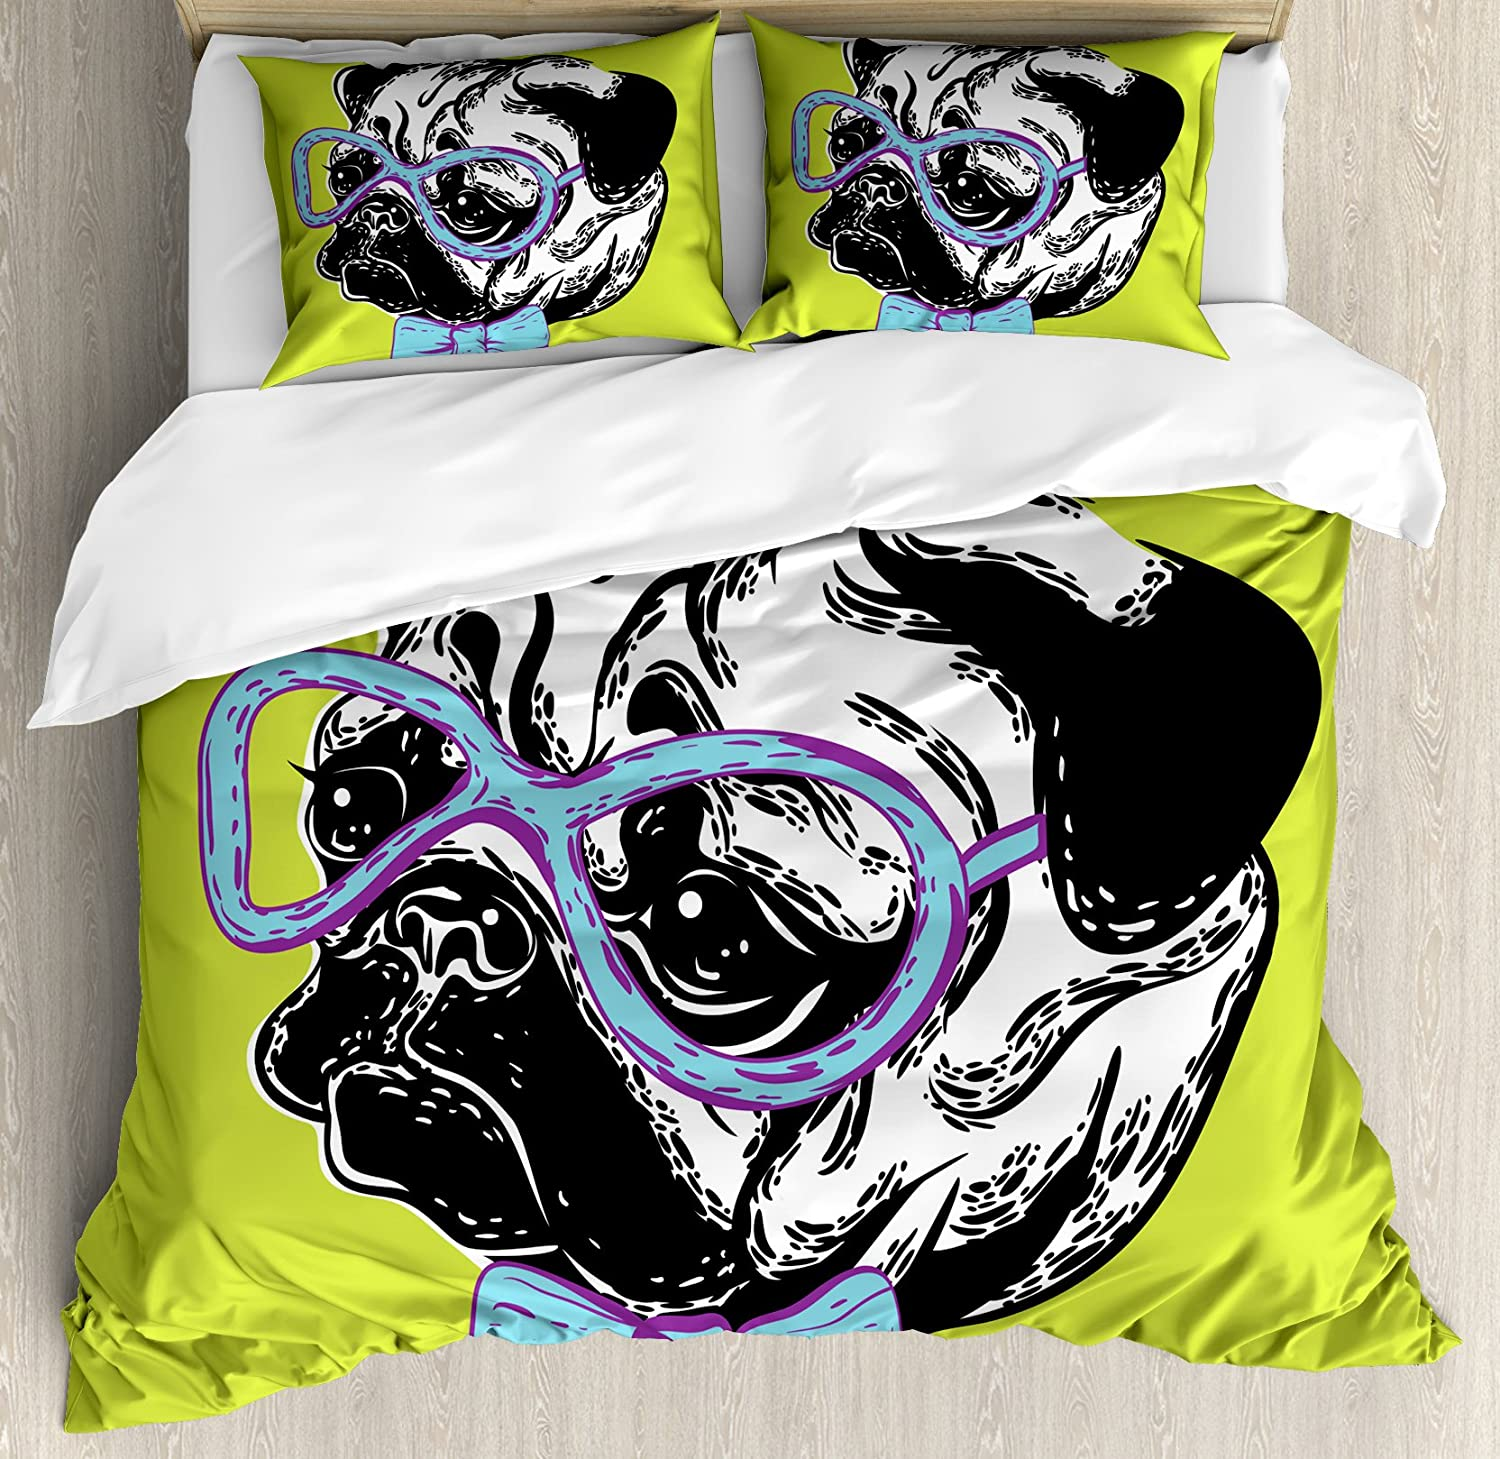 Ambesonne Pug Duvet Cover Set Queen Size, Cute Dog with a Bow Tie and Nerdy Glasses on Green Shade Backdrop, Decorative 3 Piece Bedding Set with 2 Pillow Shams, Apple Green Pale bluee Lavender